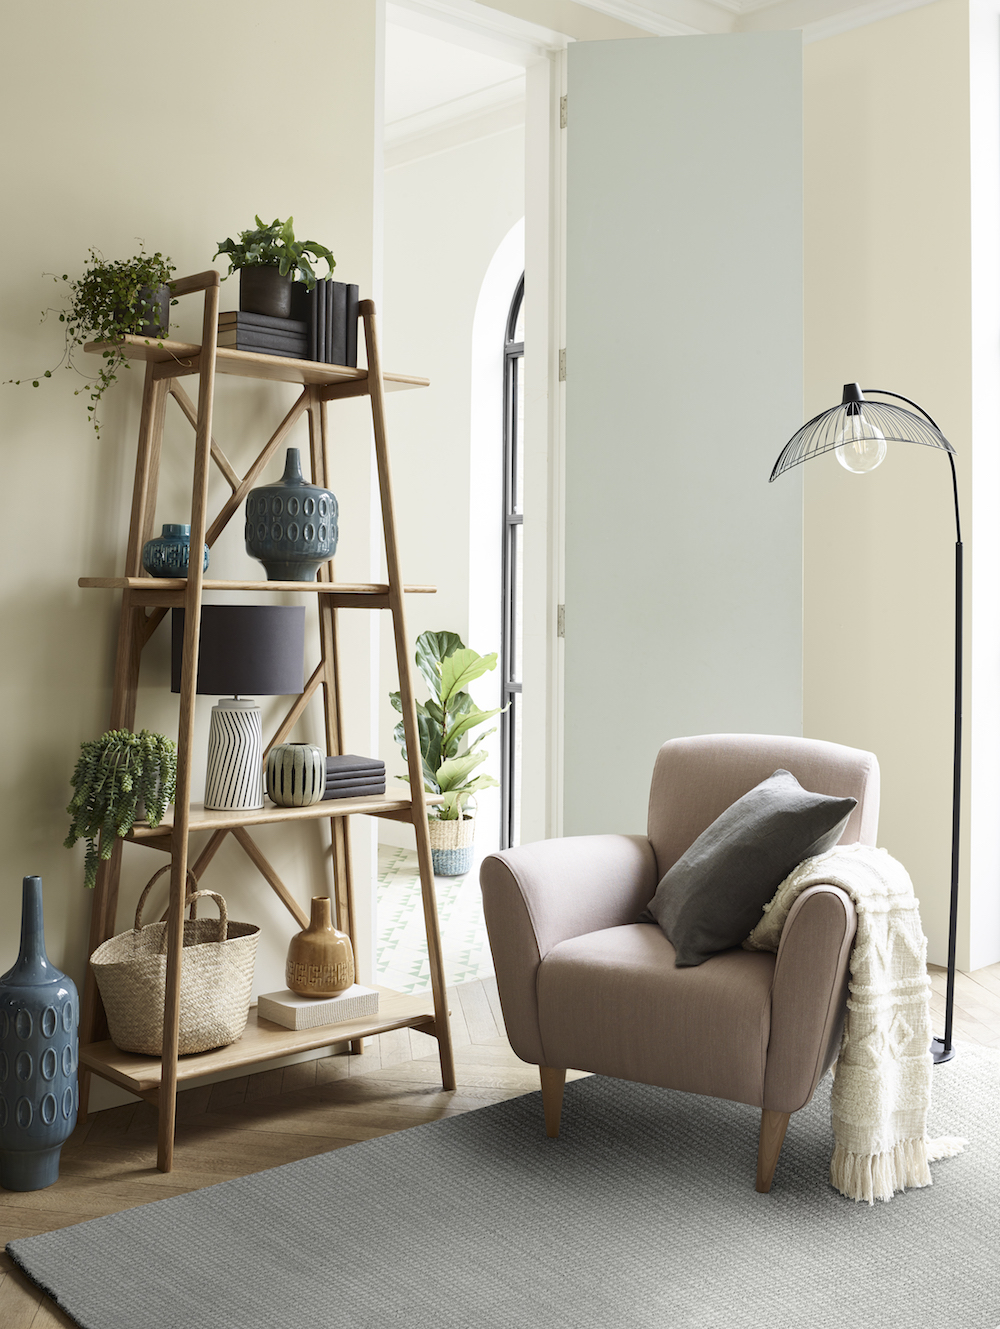 Albie Armchair, £499, Mantis Bookcase, £450, Hiko Floor Lamp, £140, Ziggy Table Lamp, £75